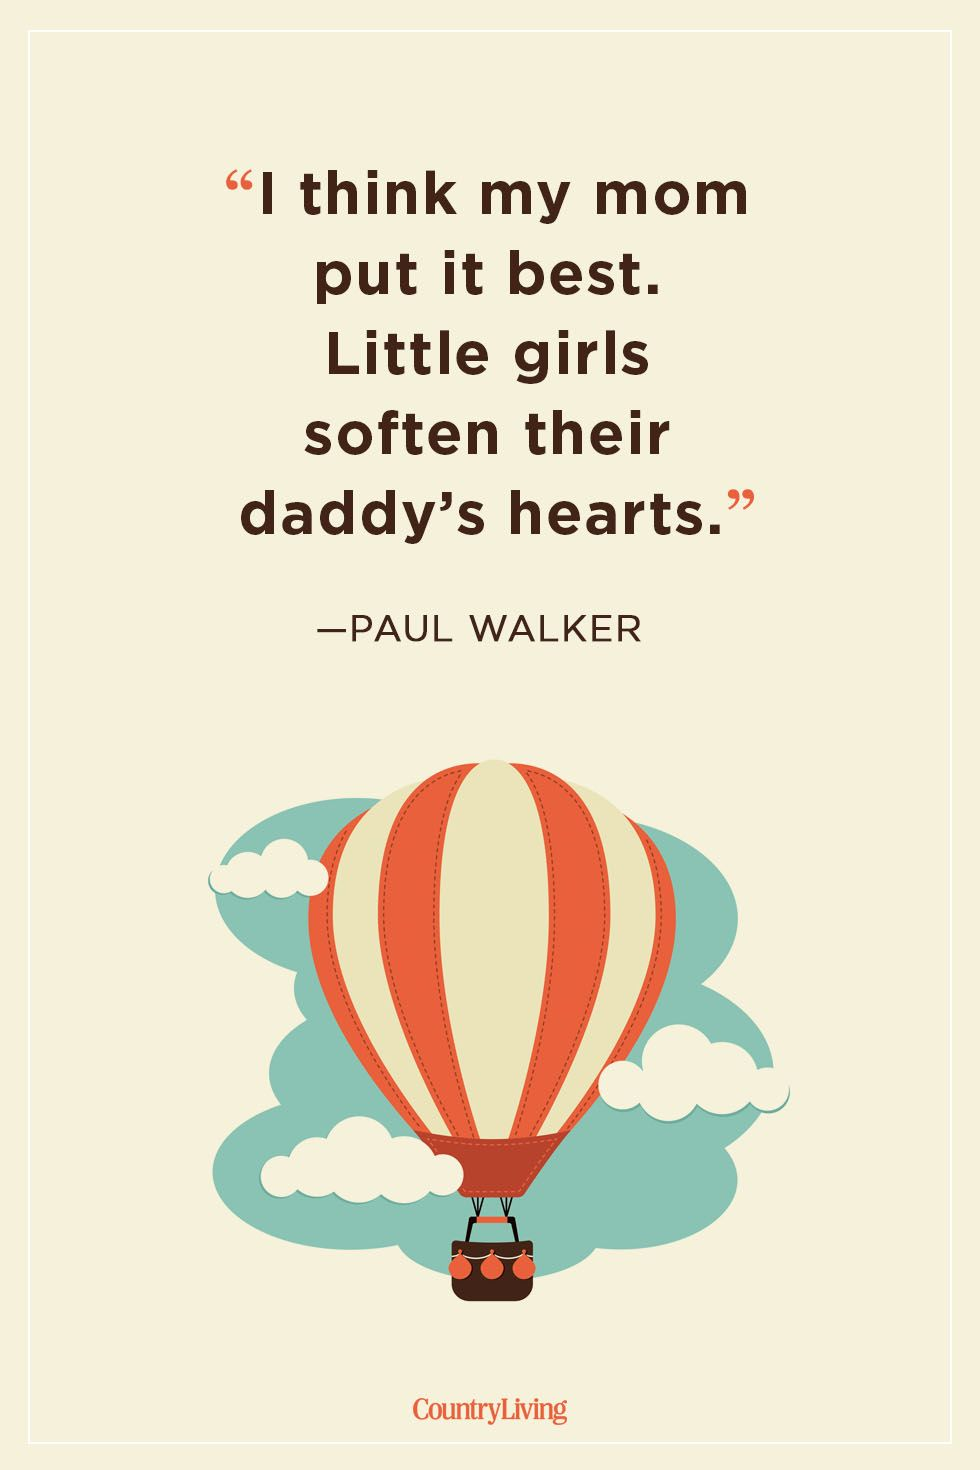 Image of: Cody Walker Paul Walker Father Daughter Quotes Linesquotescom 20 Father Daughter Quotes Sweet Sayings About Dads Daughters